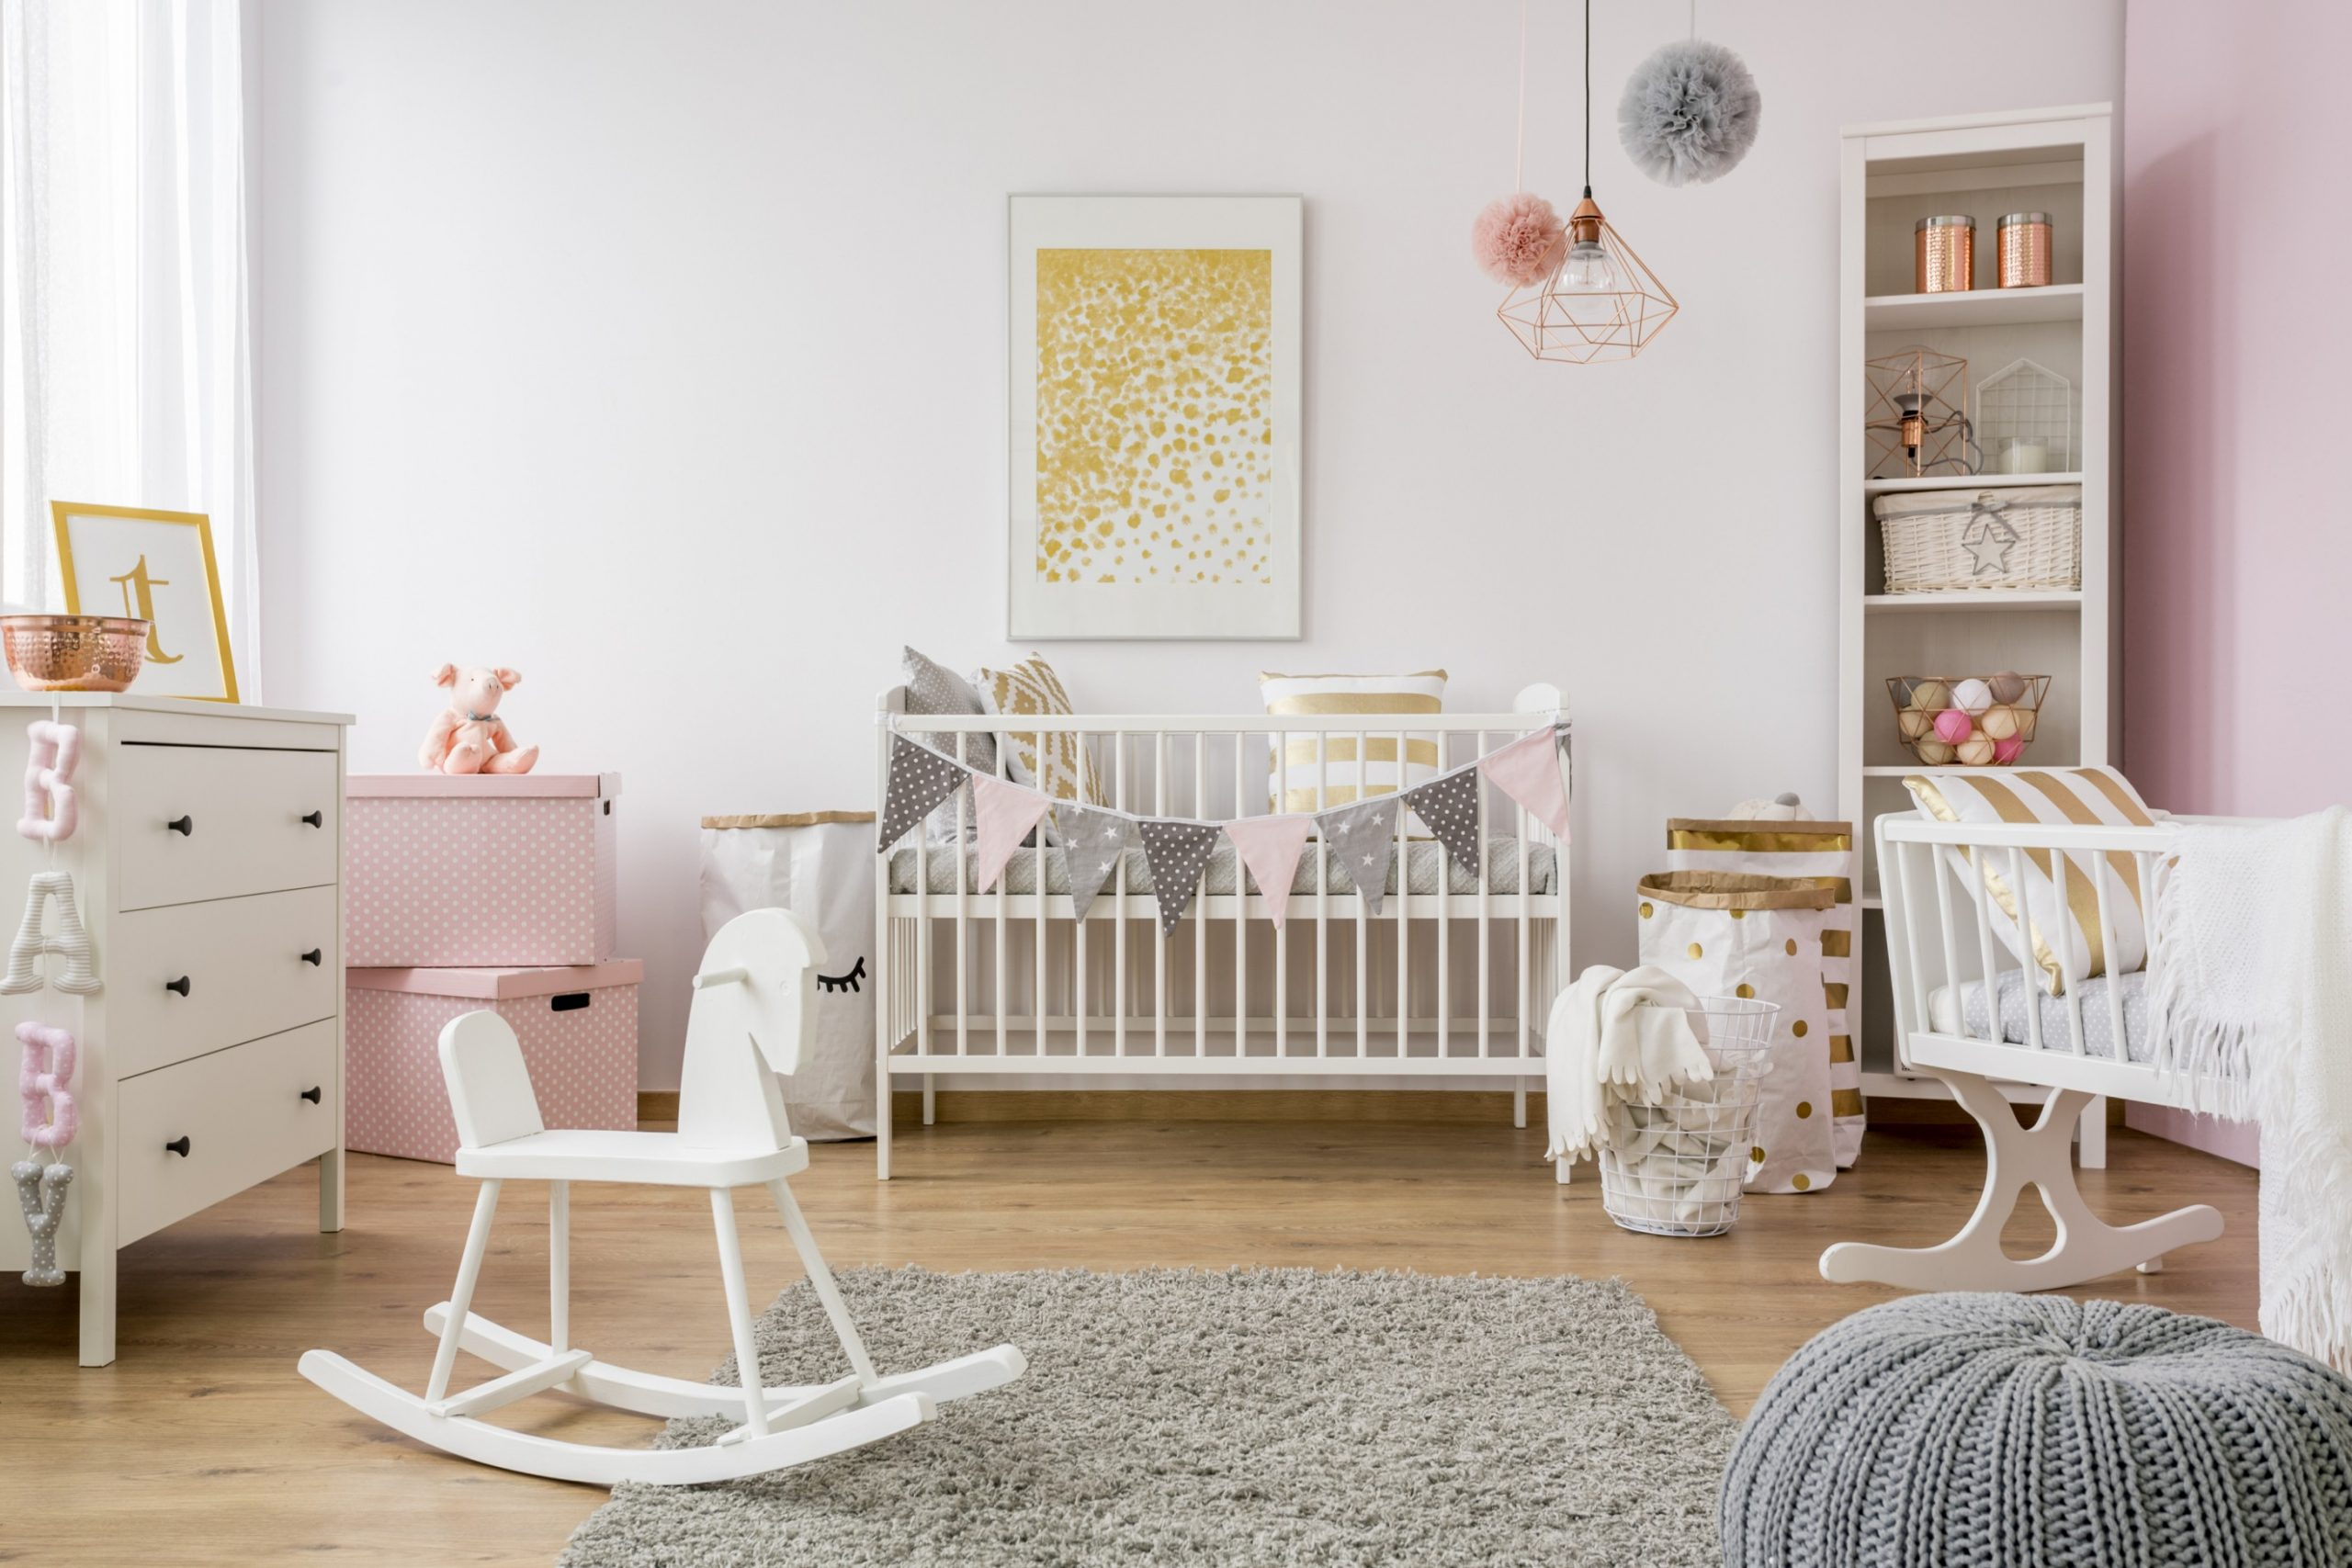 The Best Baby Room Storage Solutions on Amazon – SheKnows - Baby Room Storage Ideas